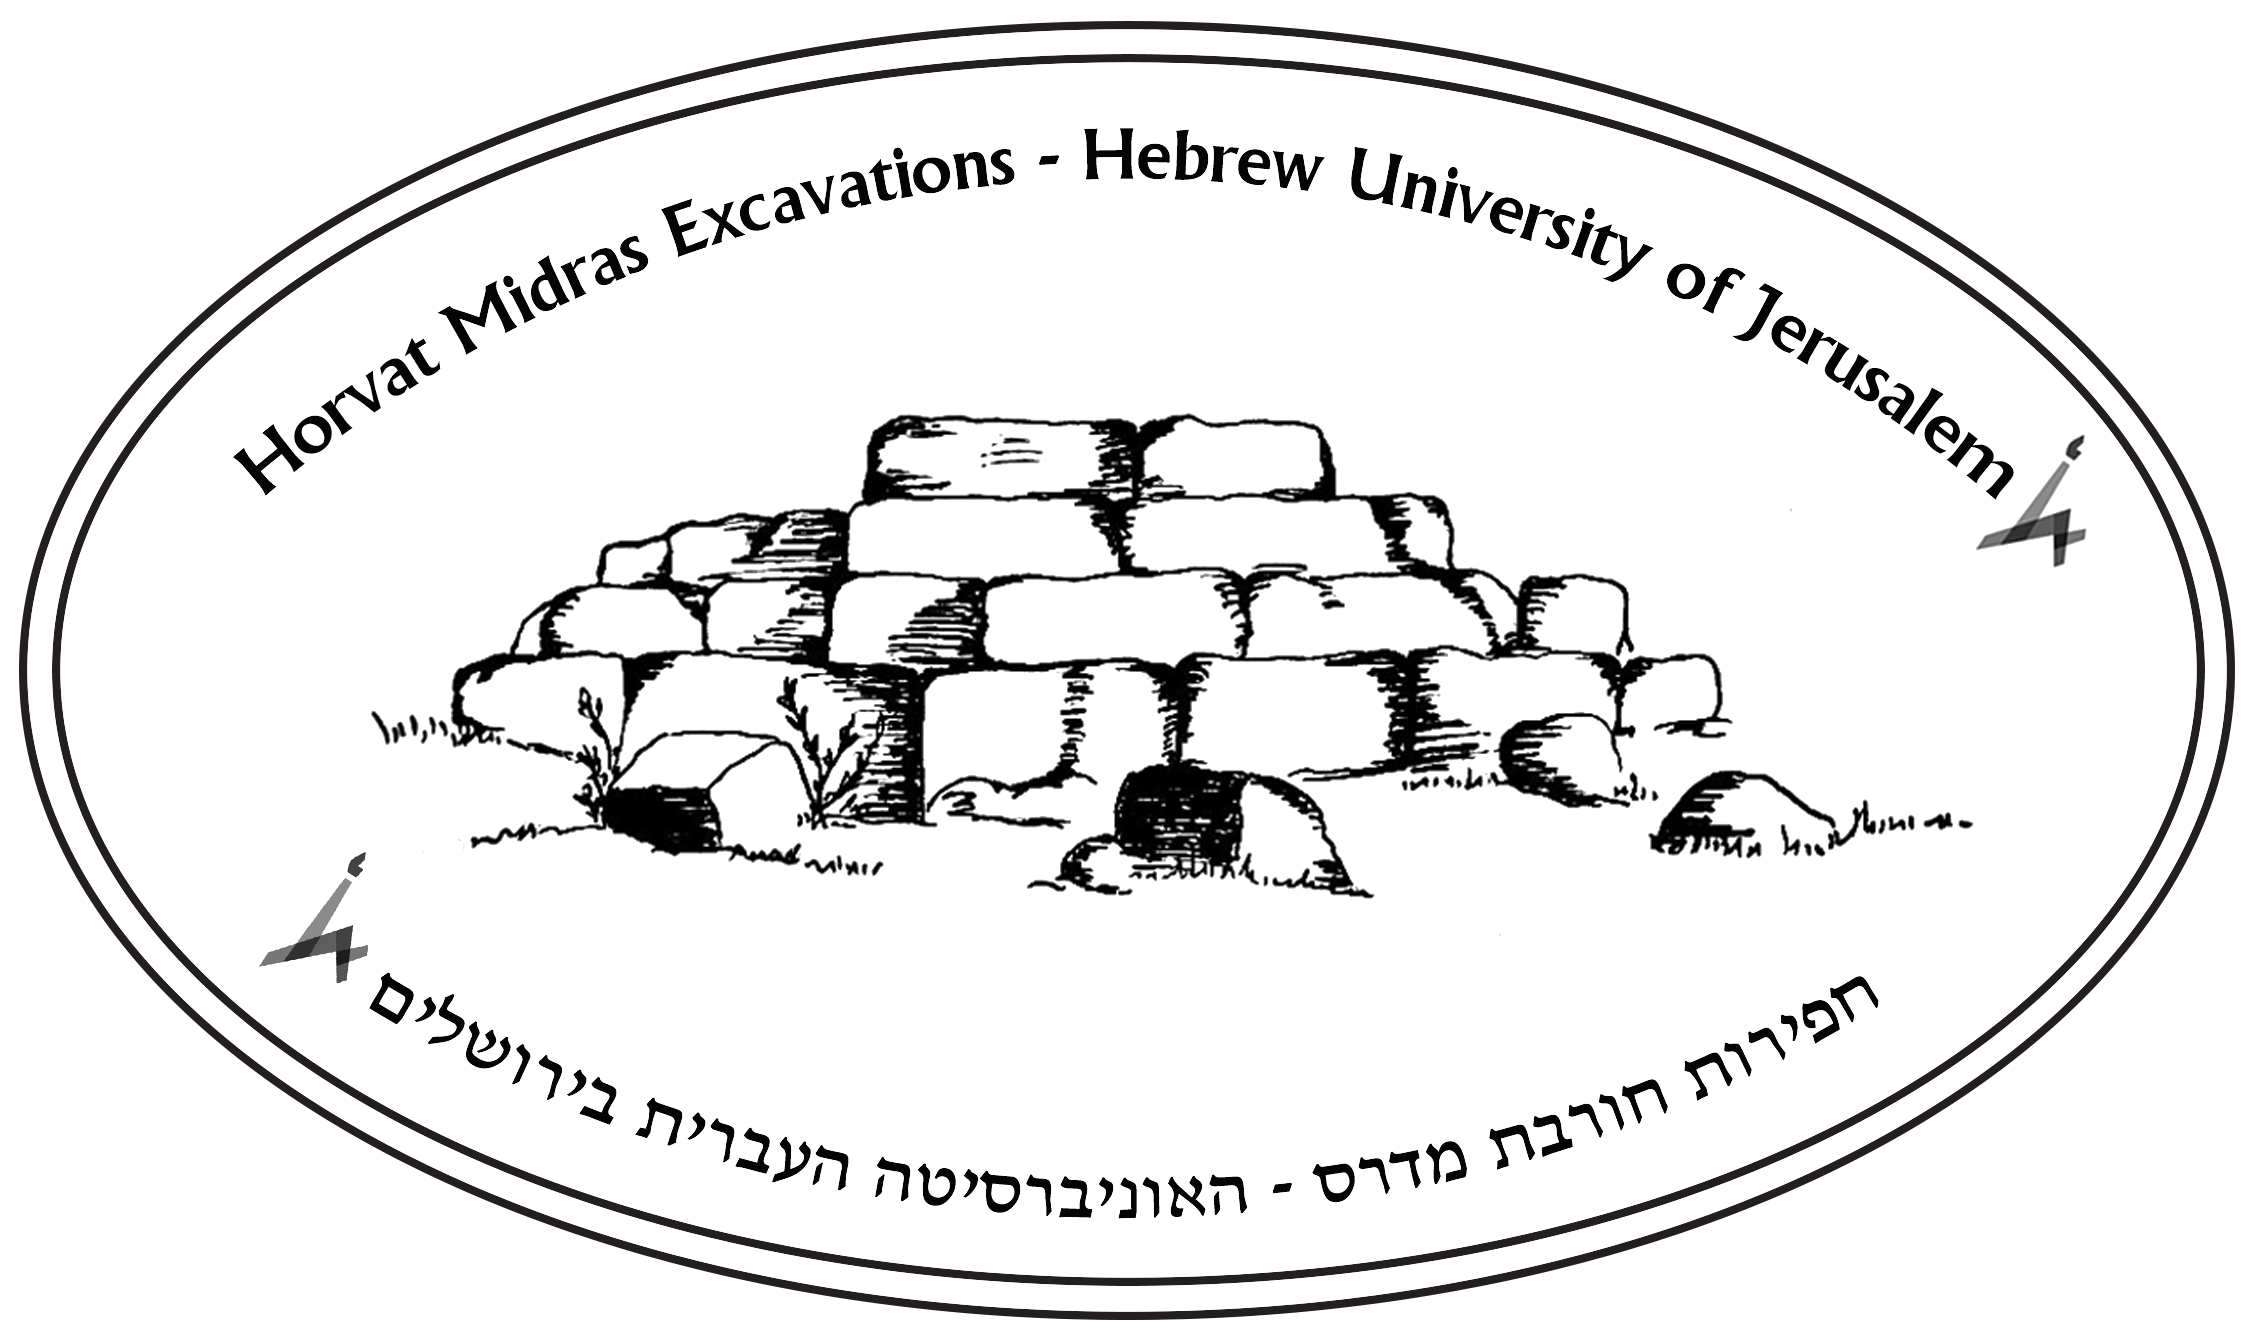 Horvat Midras Excavations